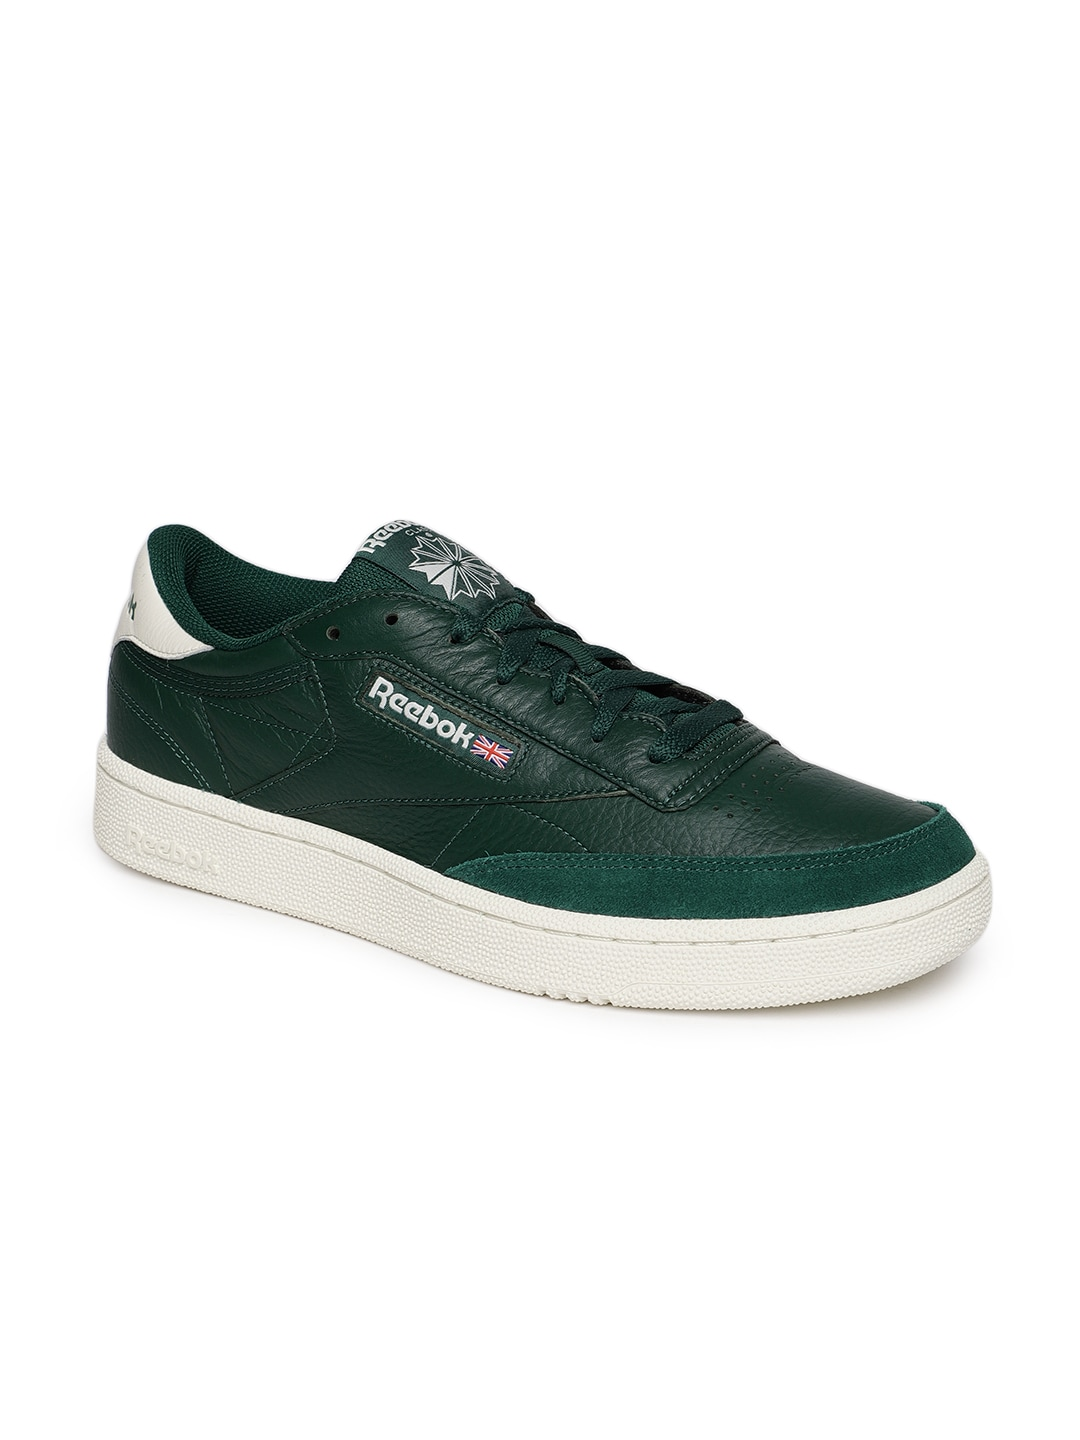 6a2d5d3ae78cae Reebok Classic Shoes - Buy Reebok Classic Shoes online in India